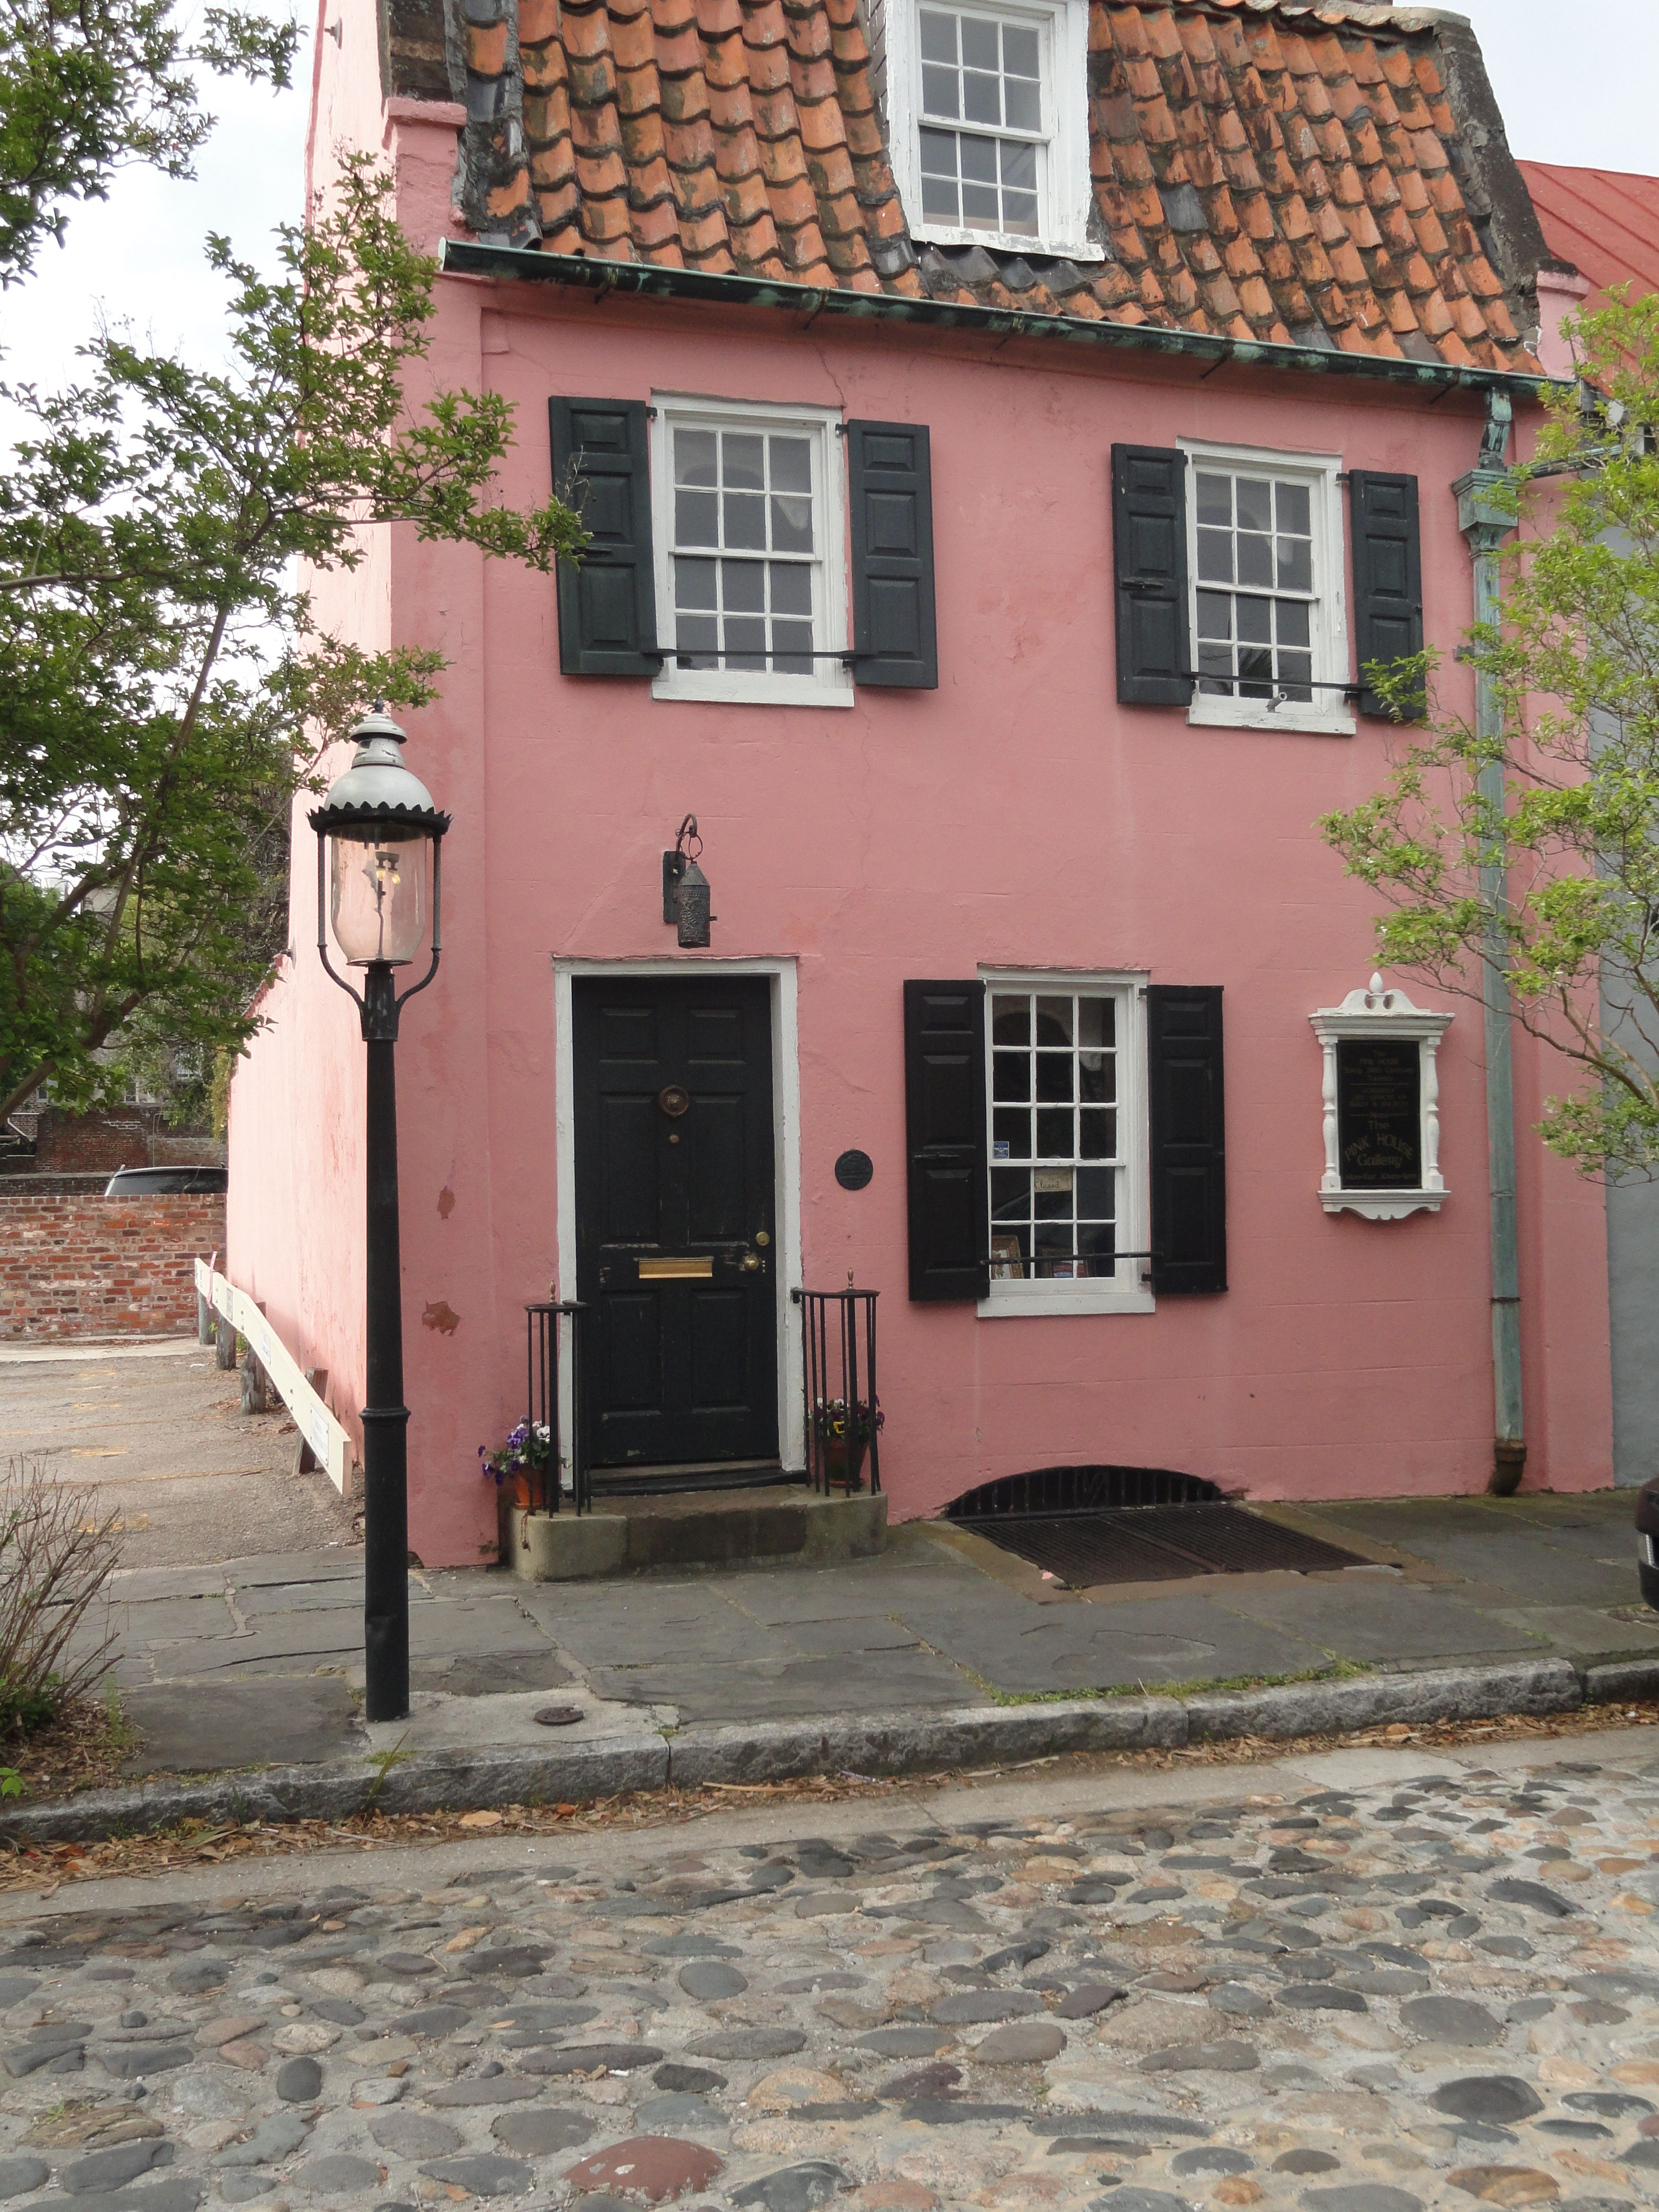 Little pink house in Charleston, SC.  Actually used to be a house that the sailors frequented when they got off the ships!